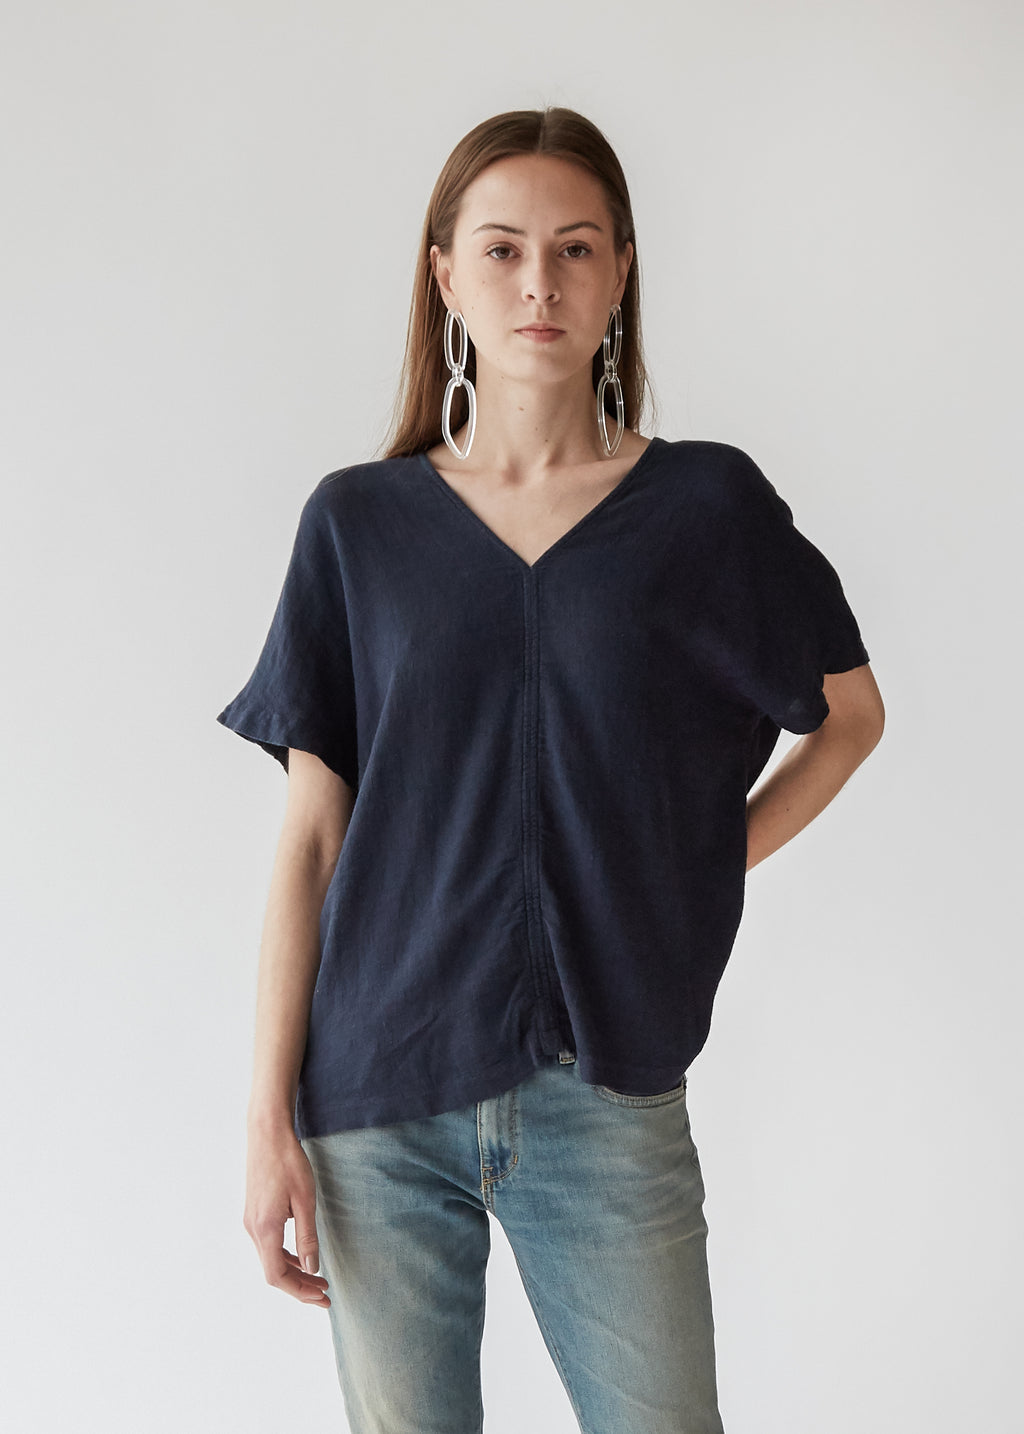 Y Top in Dark Navy - SOLD OUT